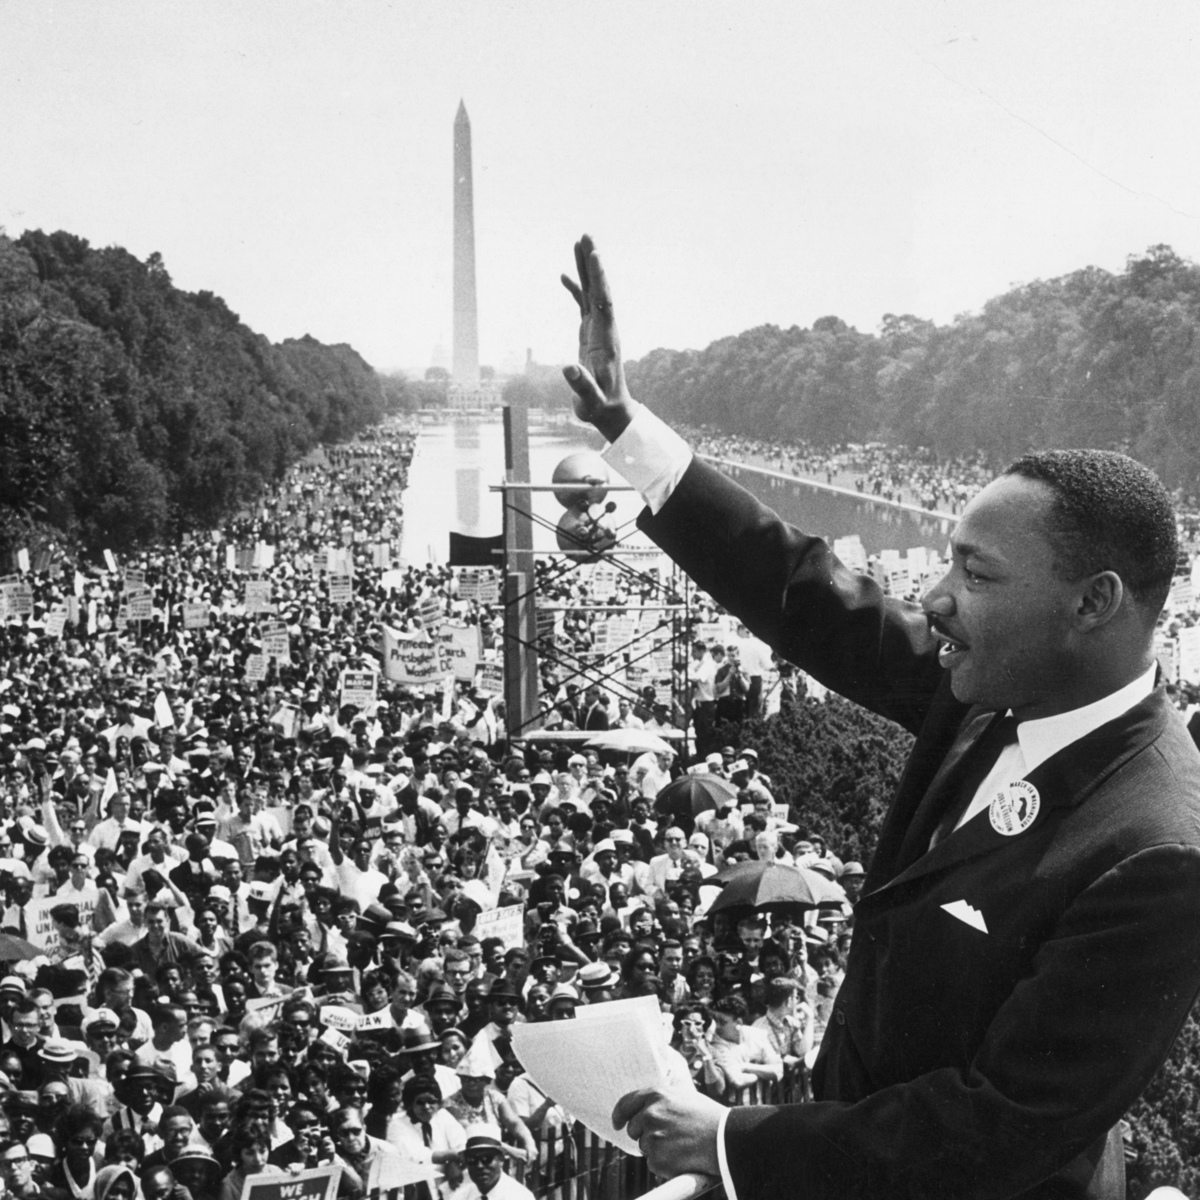 martin luther king s i have a Martin luther king, jr was a social activist and baptist minister who played a key role in the american civil rights movement from the mid-1950s until his assassination in 1968 king sought .